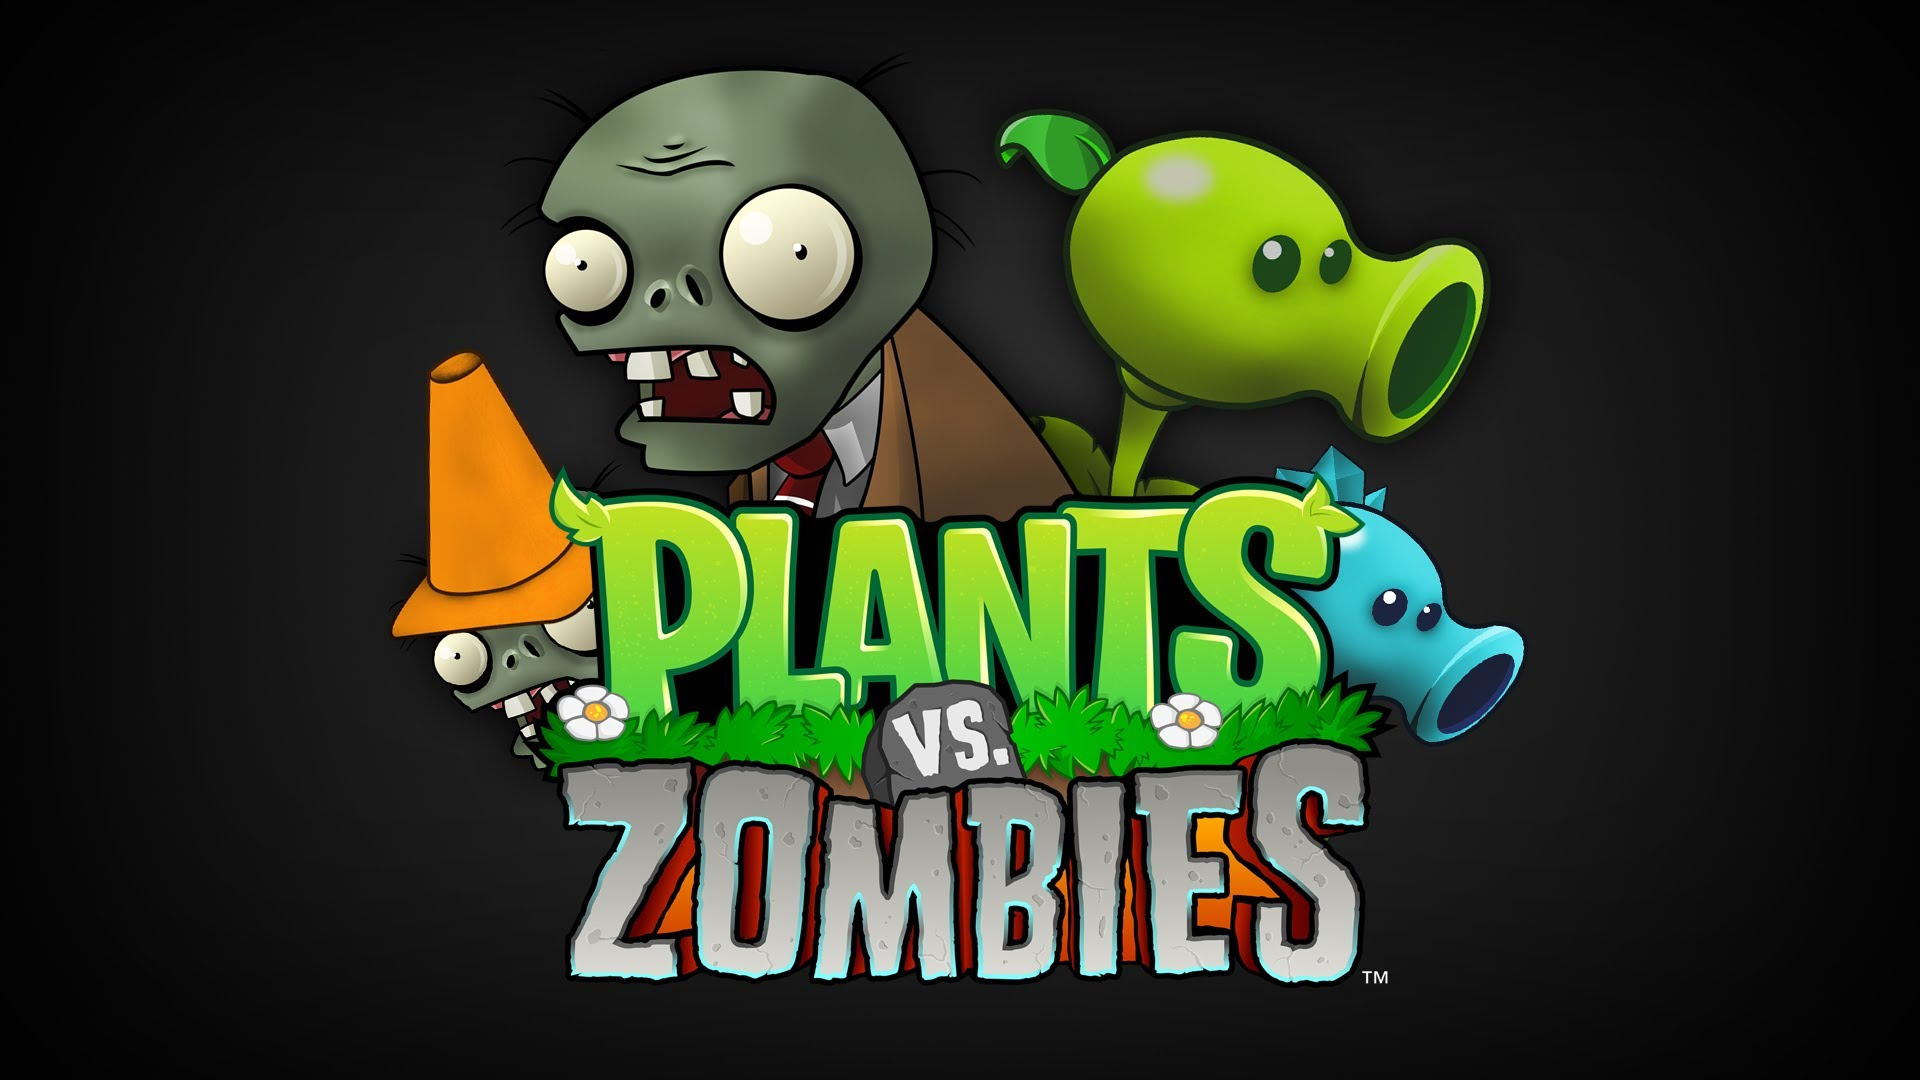 Related For Cherry Two Plants vs Zombies Art. Plants Vs Zombies